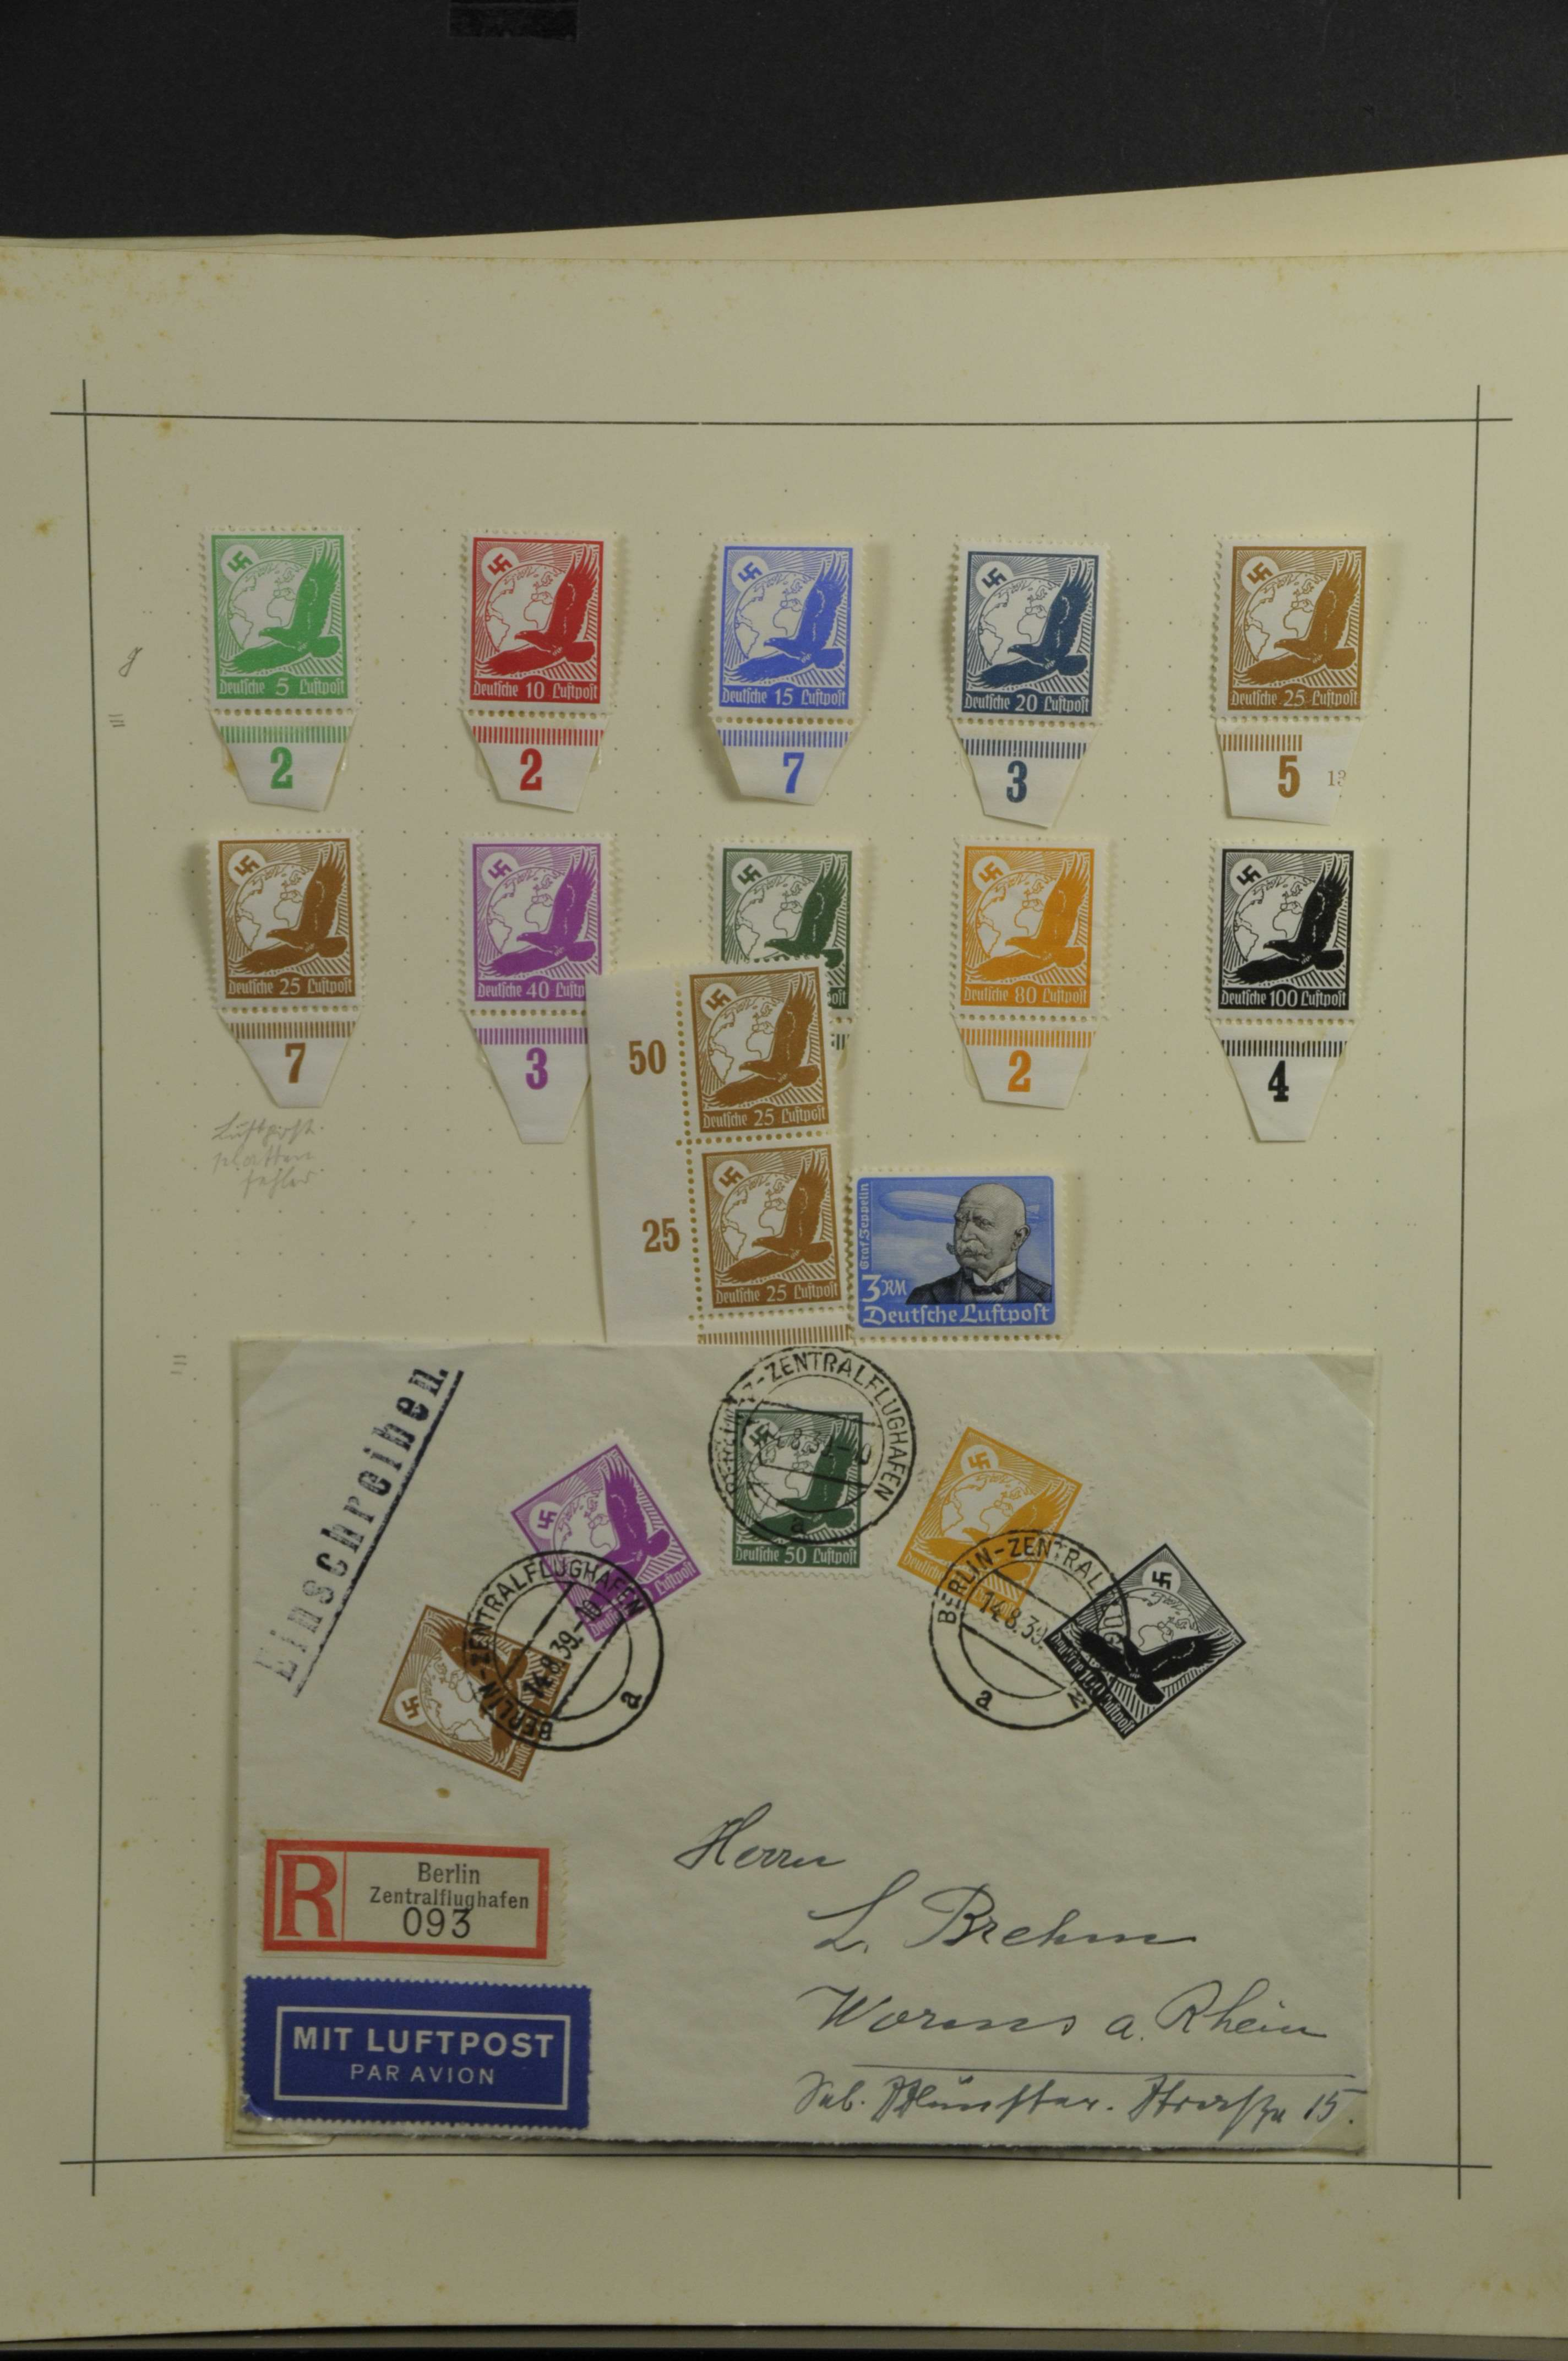 Lot 7903 - Deutsches Reich Allgemein -  Auktionshaus Ulrich Felzmann GmbH & Co. KG Auction 165 | Philately, Airmail, Zeppelinmail and Astrophilately, international,  German and collections.